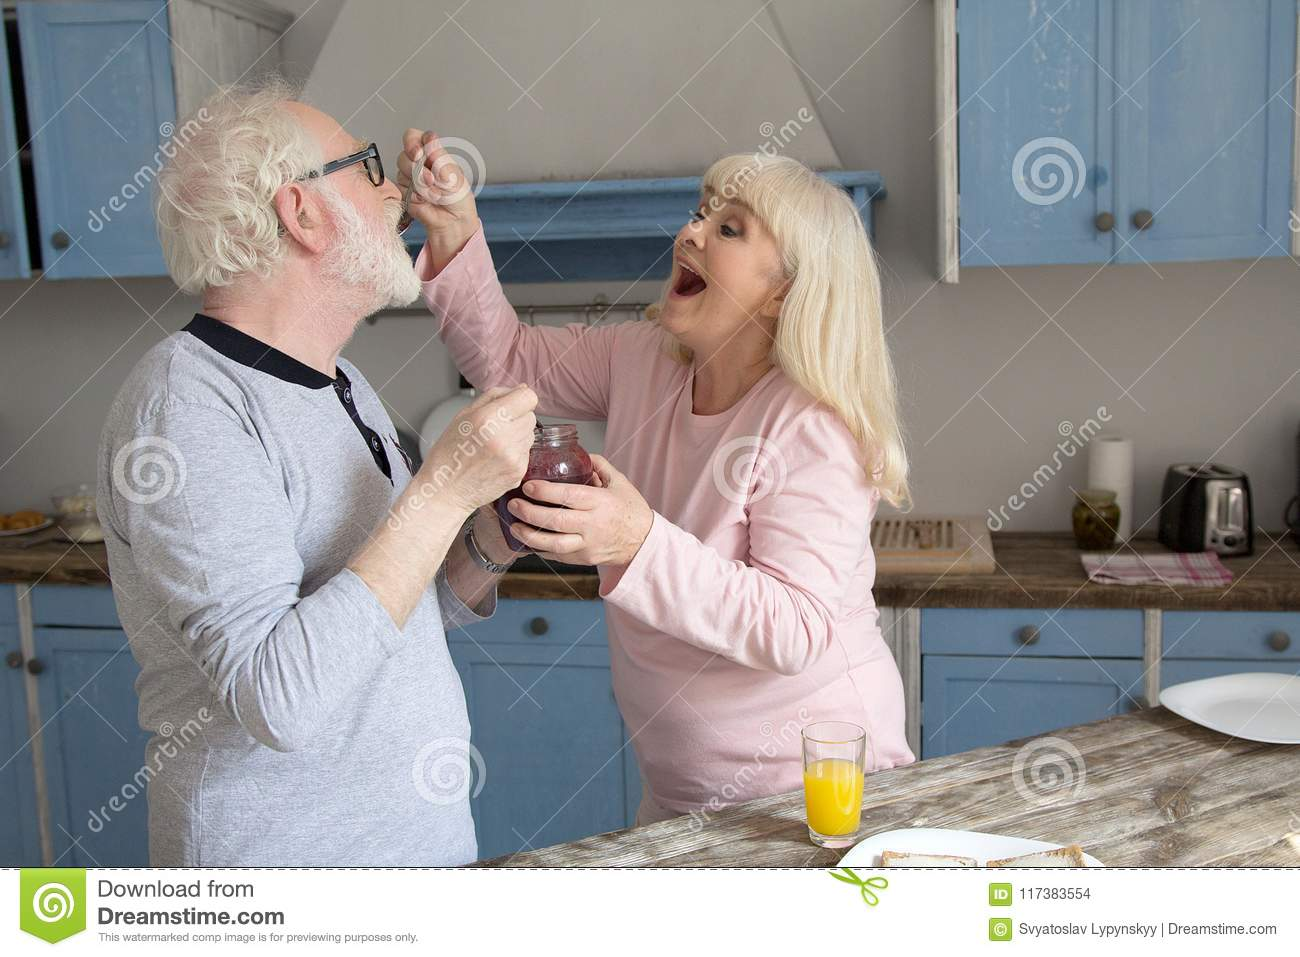 Elderly Couple Having Fun In Kitchen Stock Photo Image Of Woman